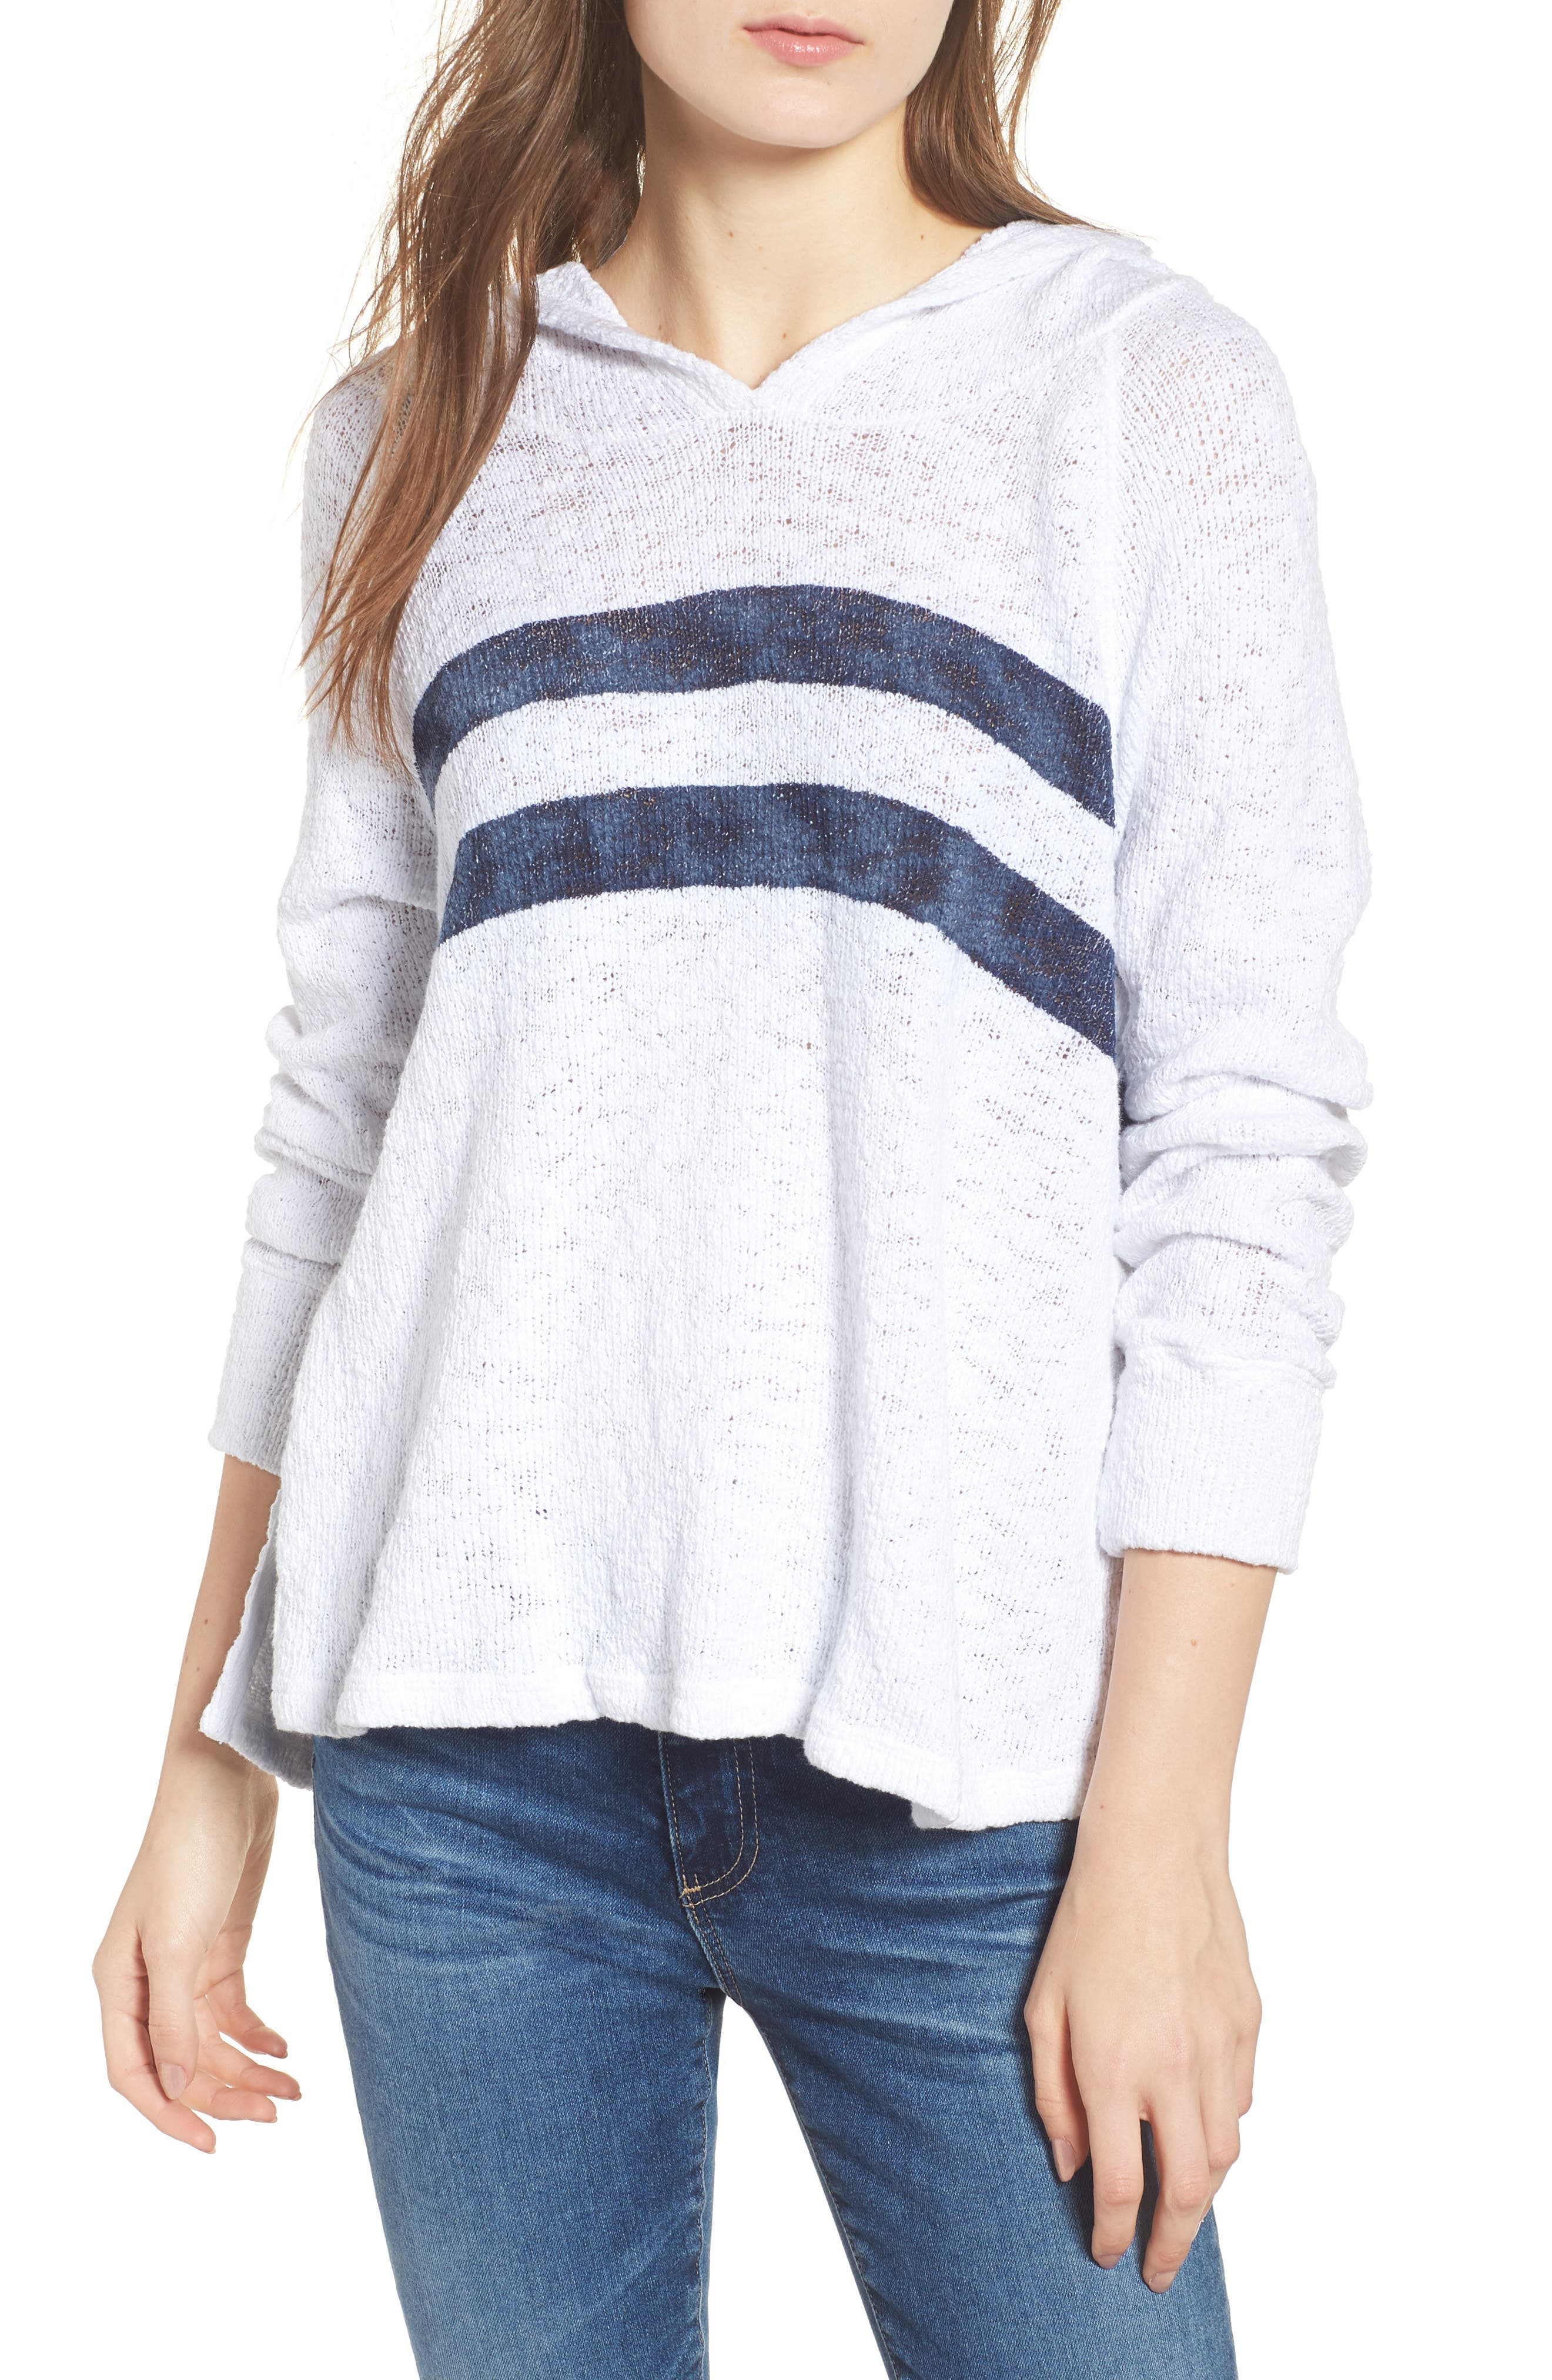 Sundry Loose Knit Hooded Sweater